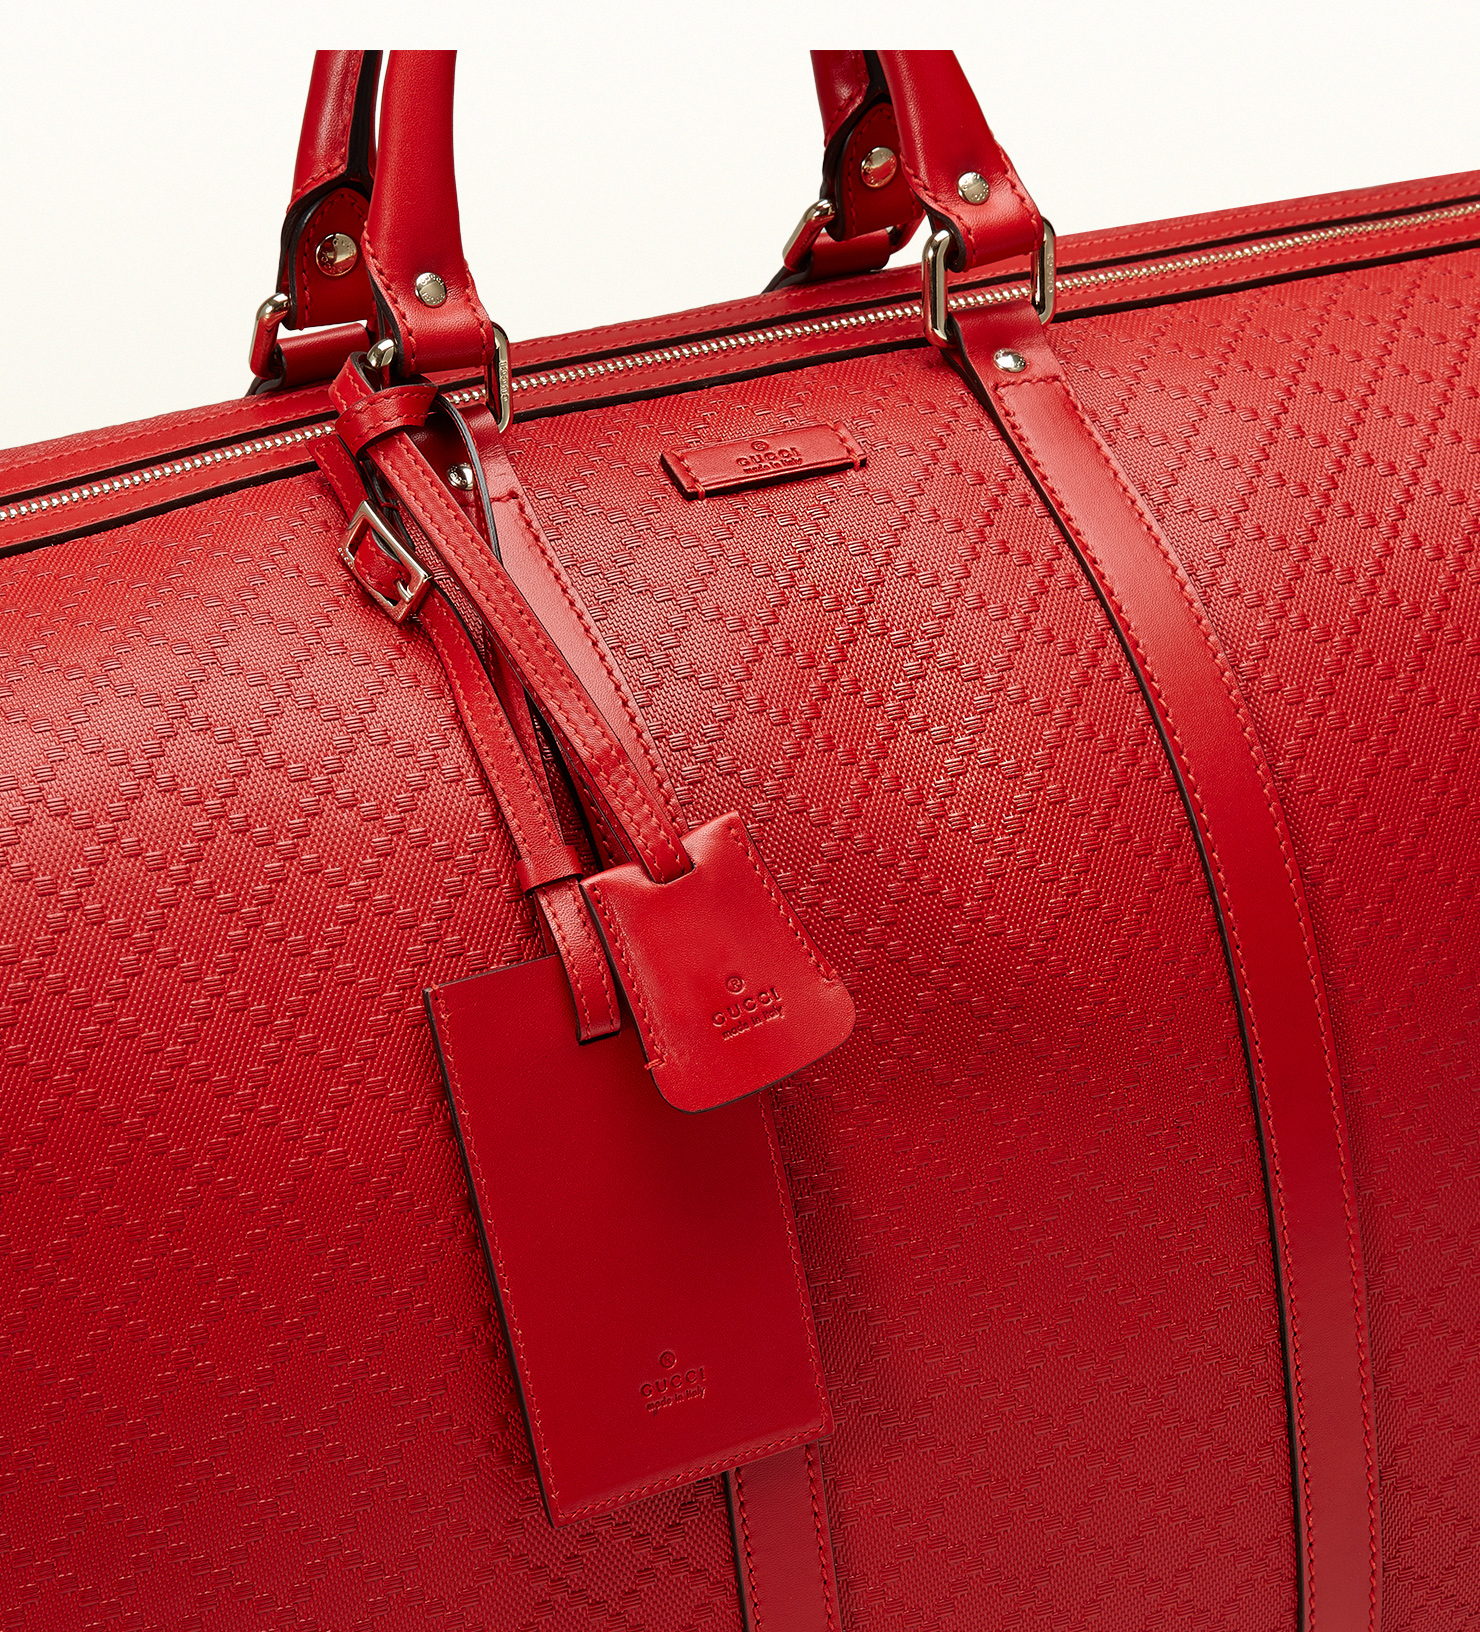 e5bd70a076d4 Gucci Bright Diamante Leather Carry-on Duffle Bag in Red - Lyst